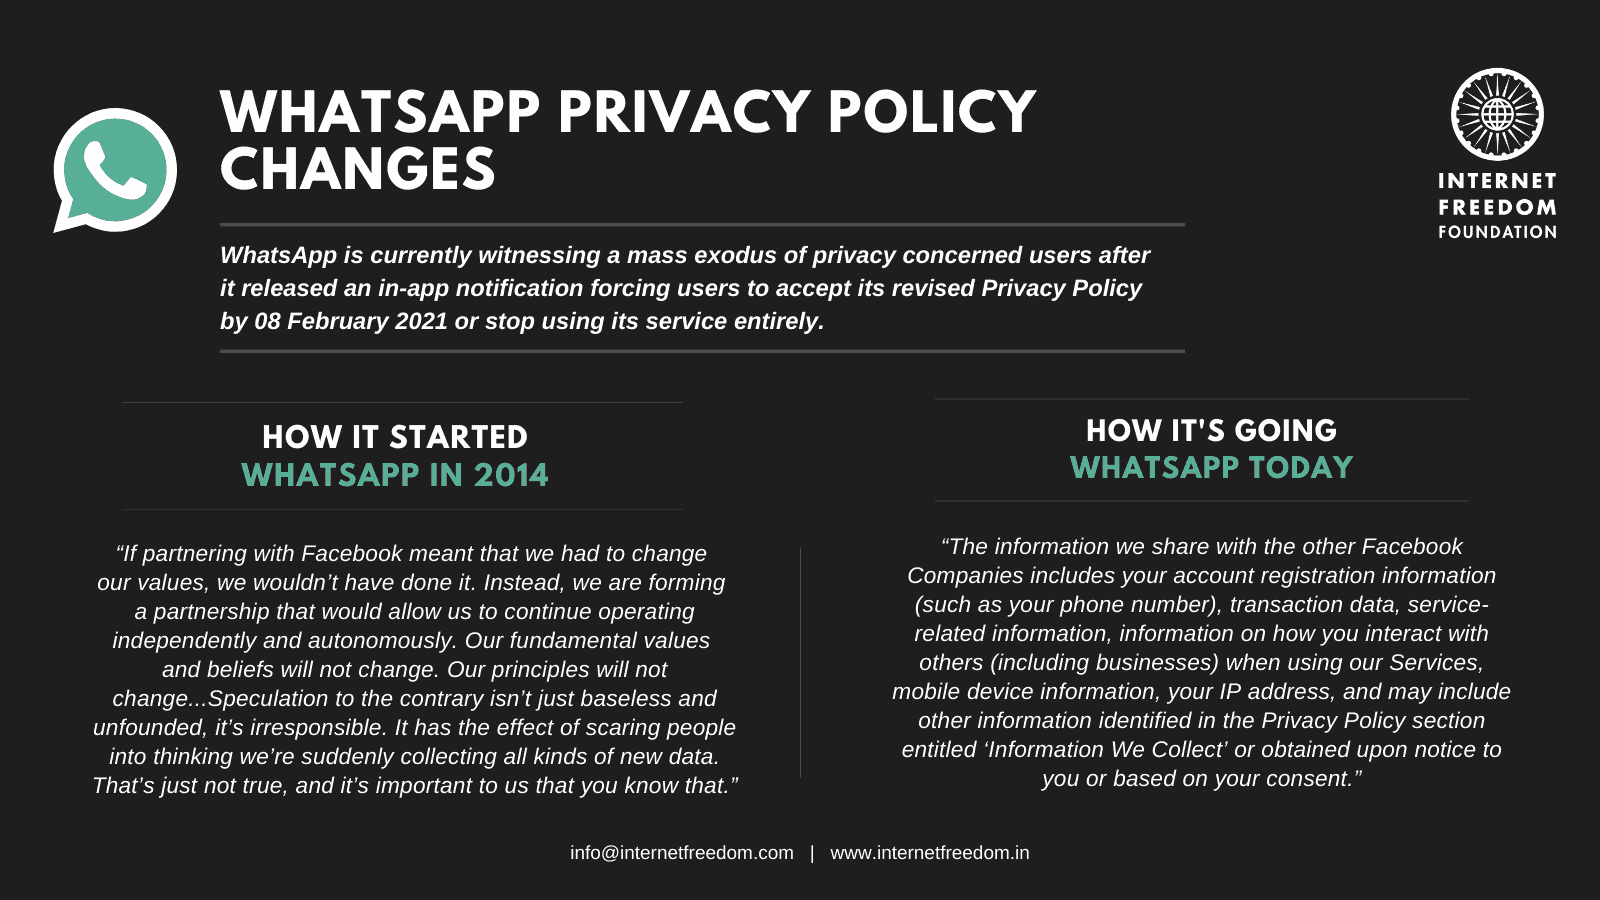 All you need to know about WhatsApp's new Privacy Policy changes